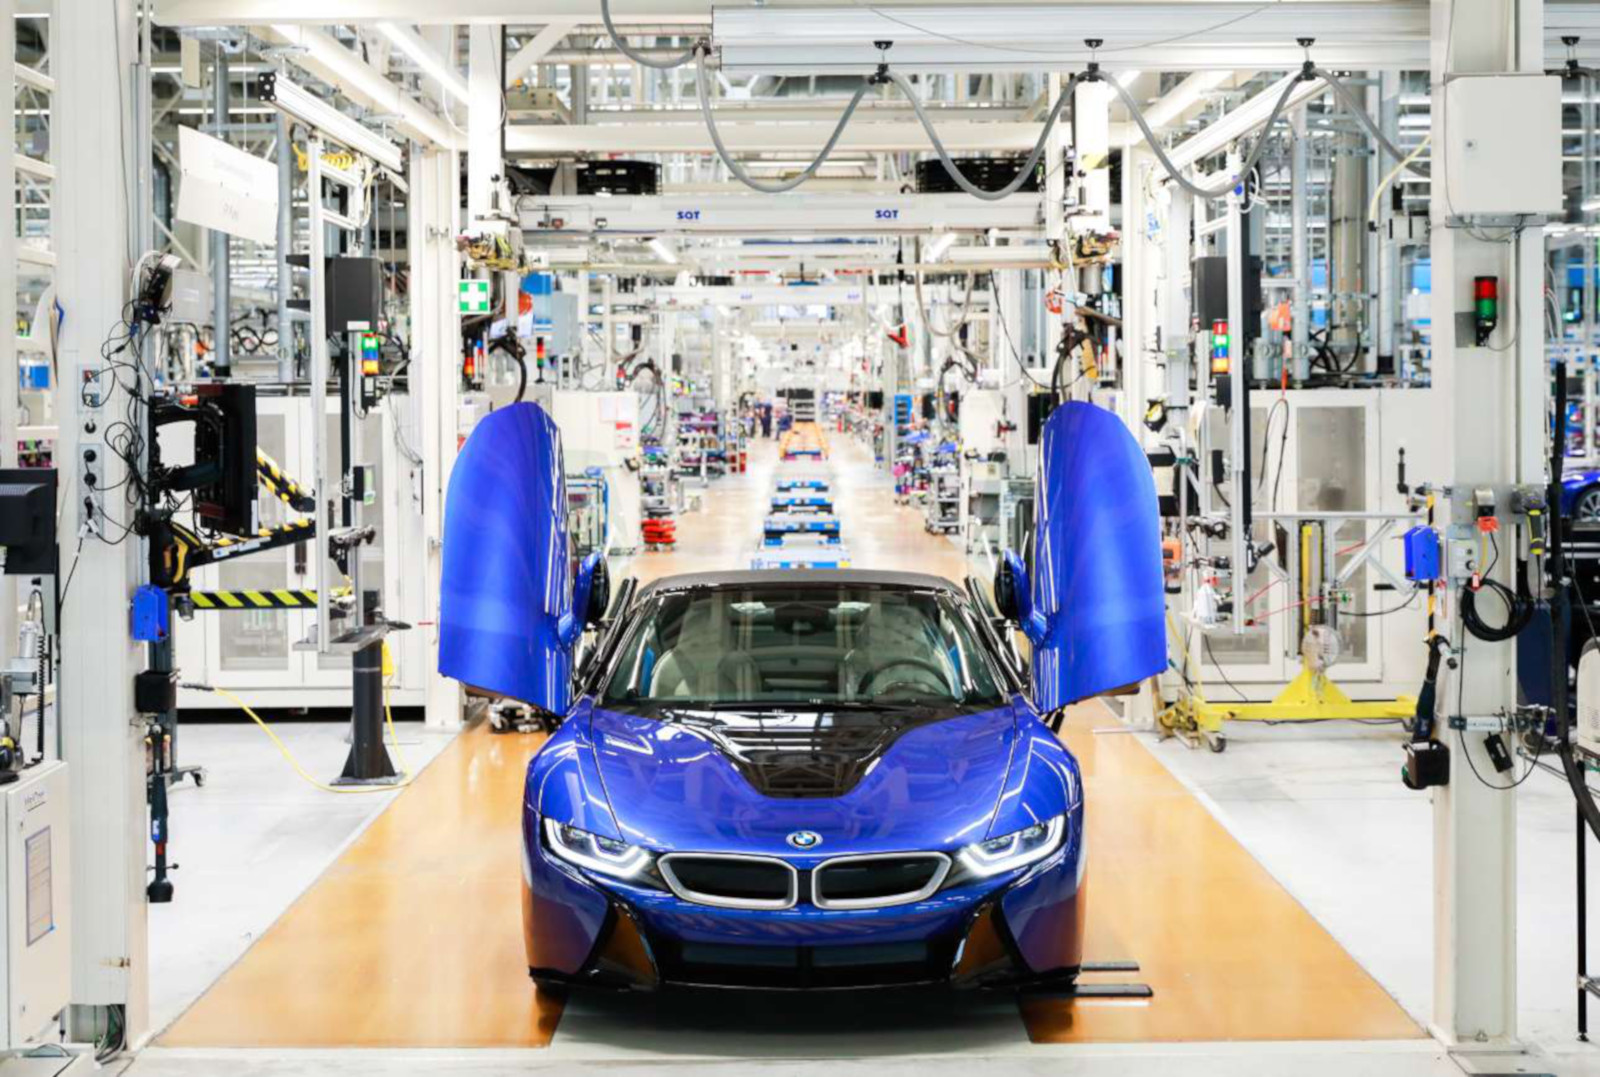 The Last Bmw I8 Built Is A Stunning One Painted In Portimao Blue